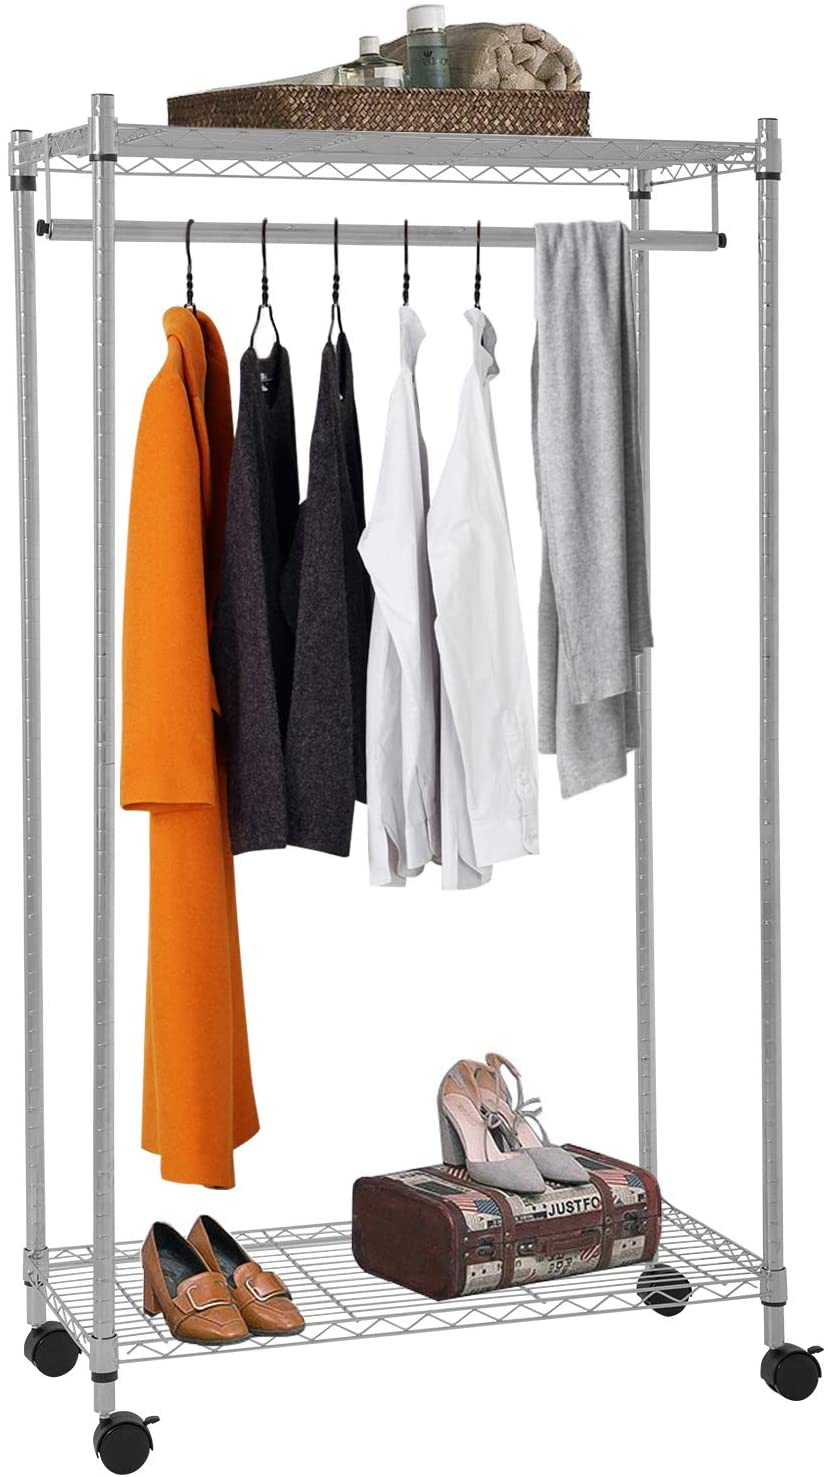 Clothes Rack On Wheels Garment Rack With Shelves Hanging